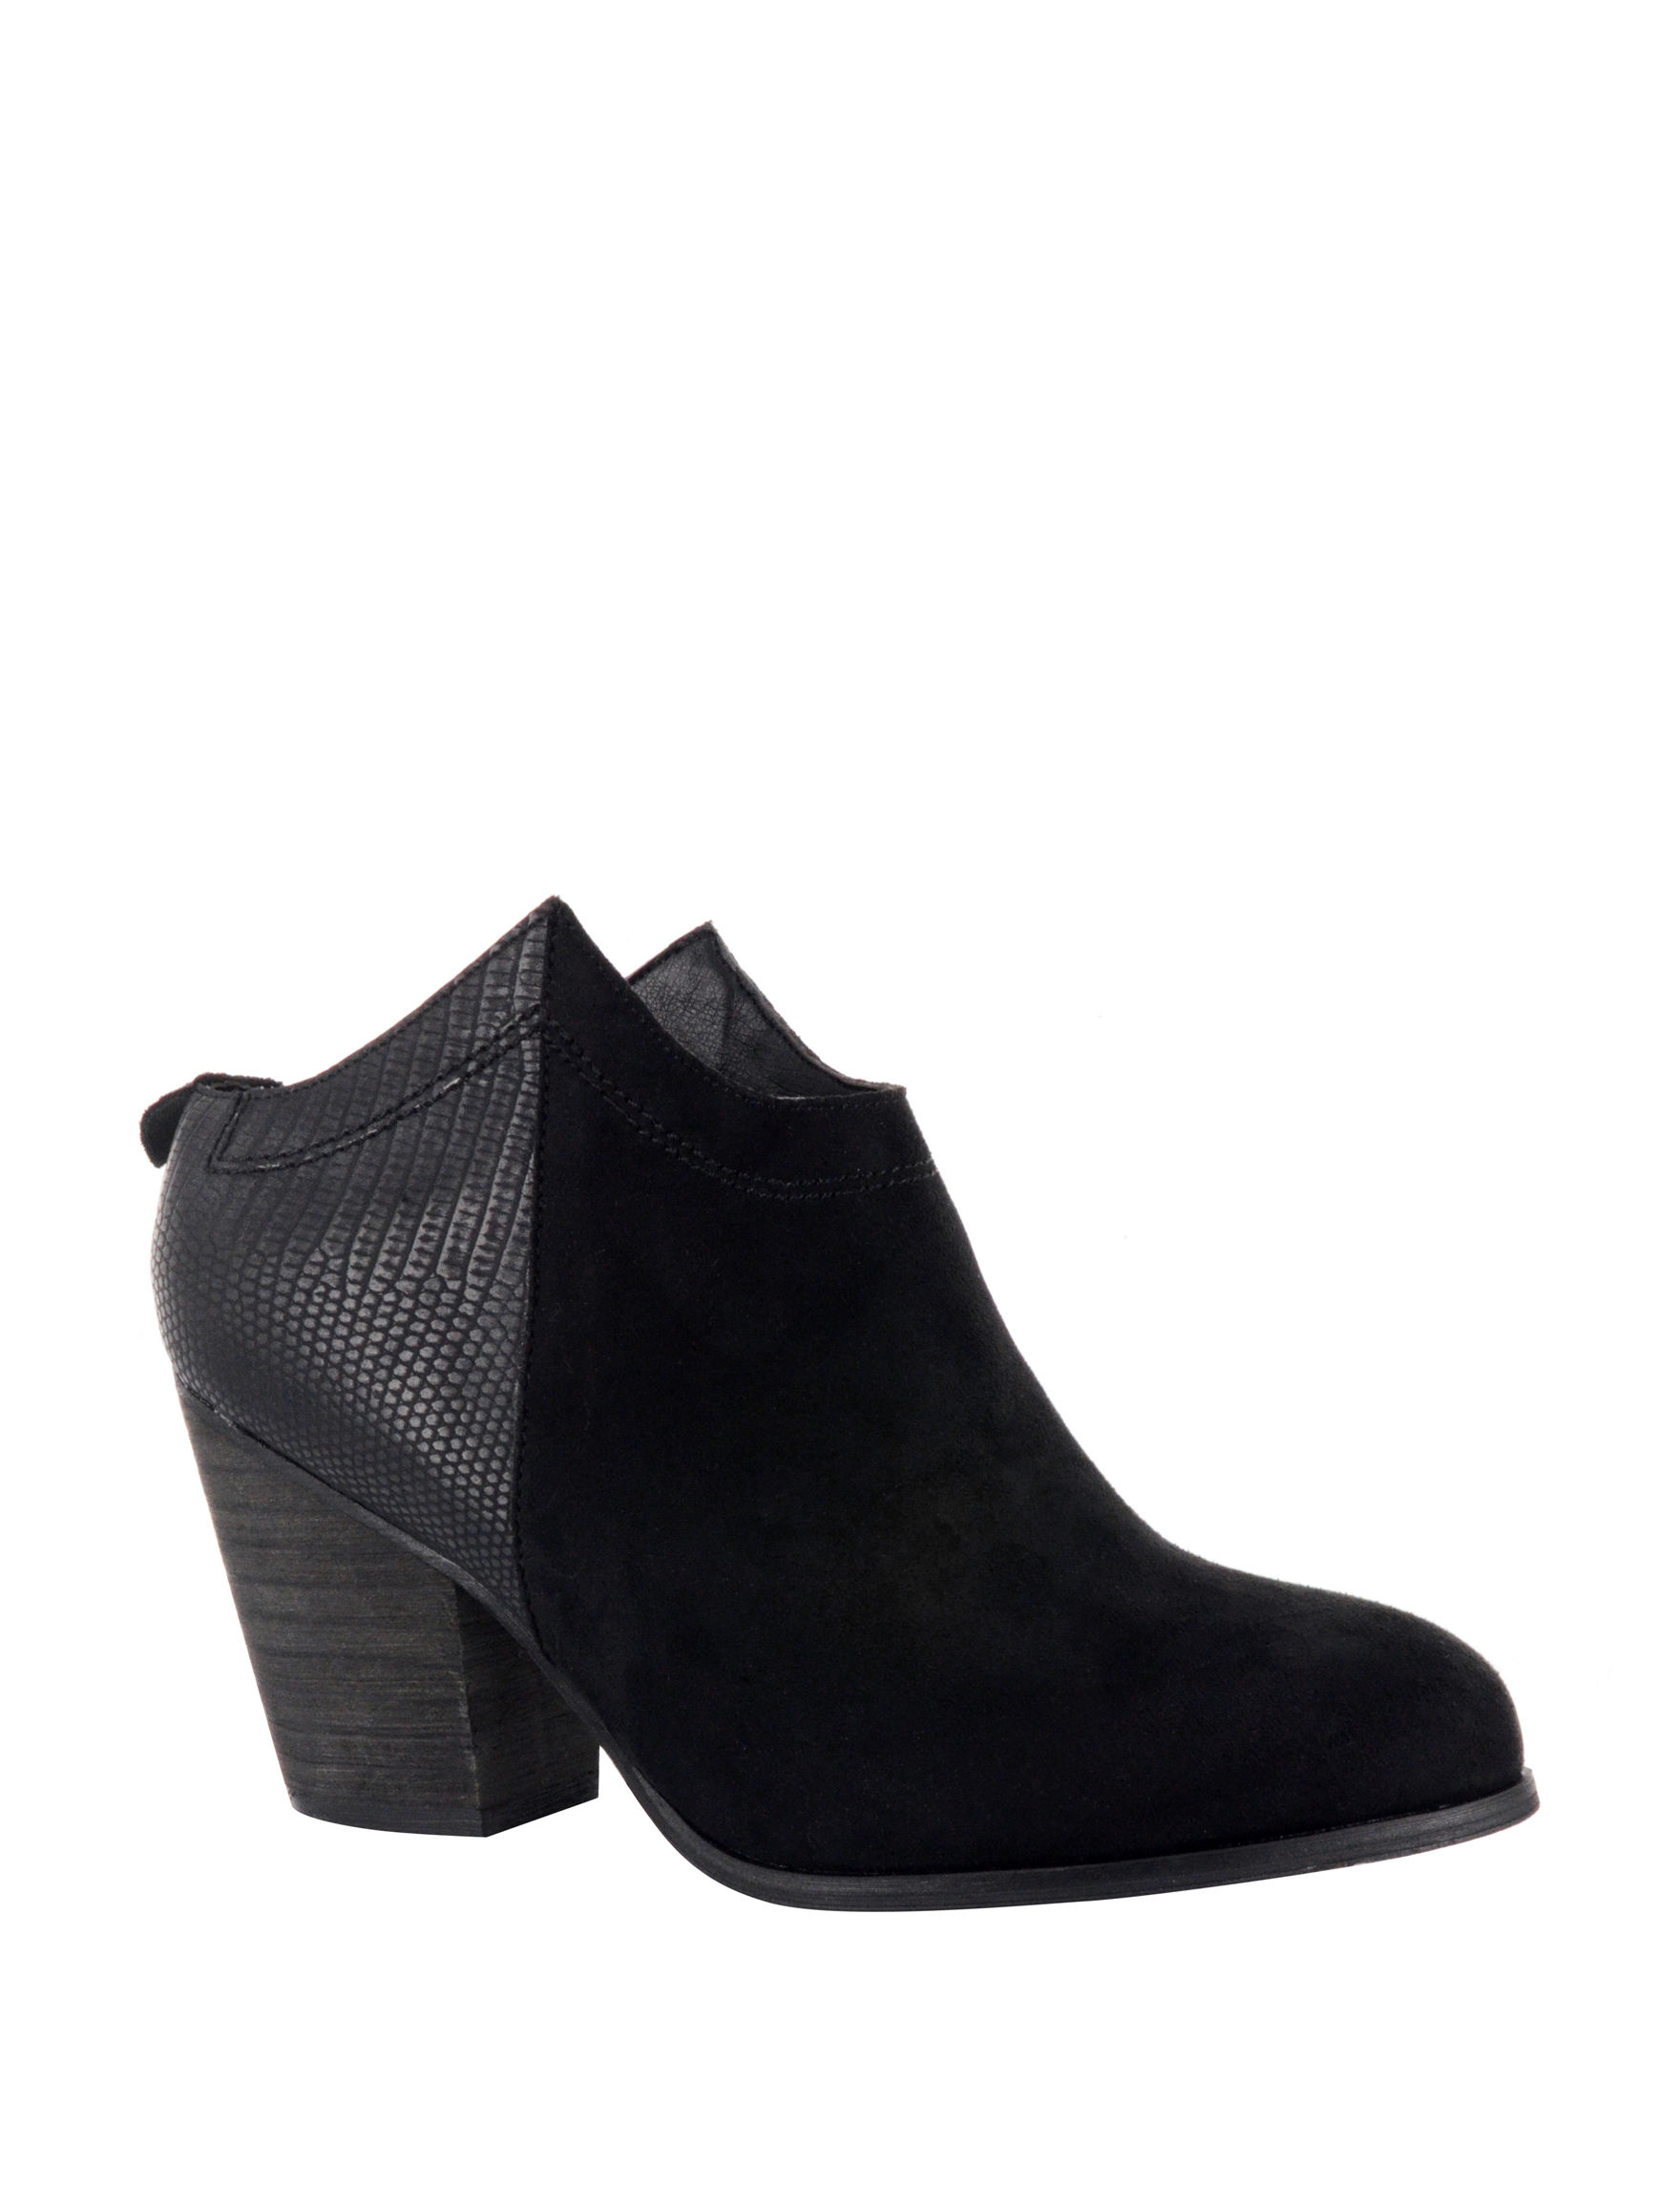 Corkys Black Ankle Boots & Booties Western & Cowboy Boots